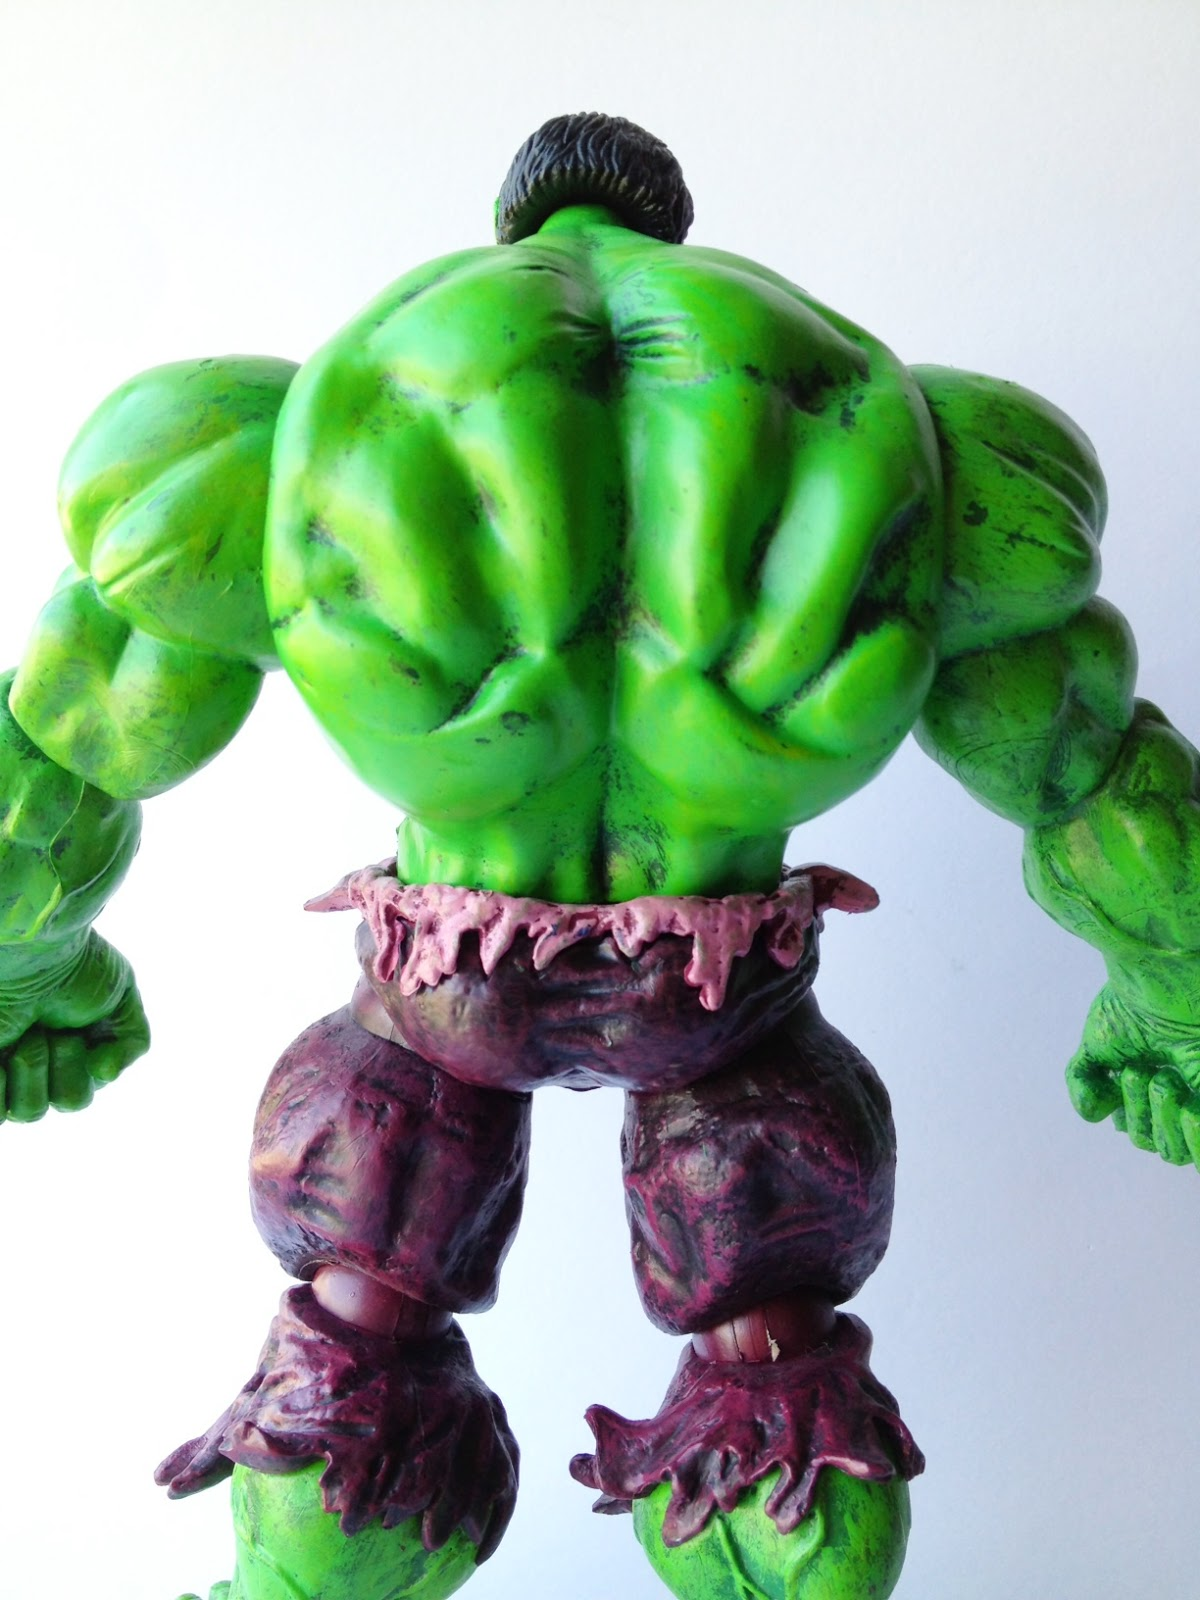 This is a graphic of Shocking Incredible Hulk Images